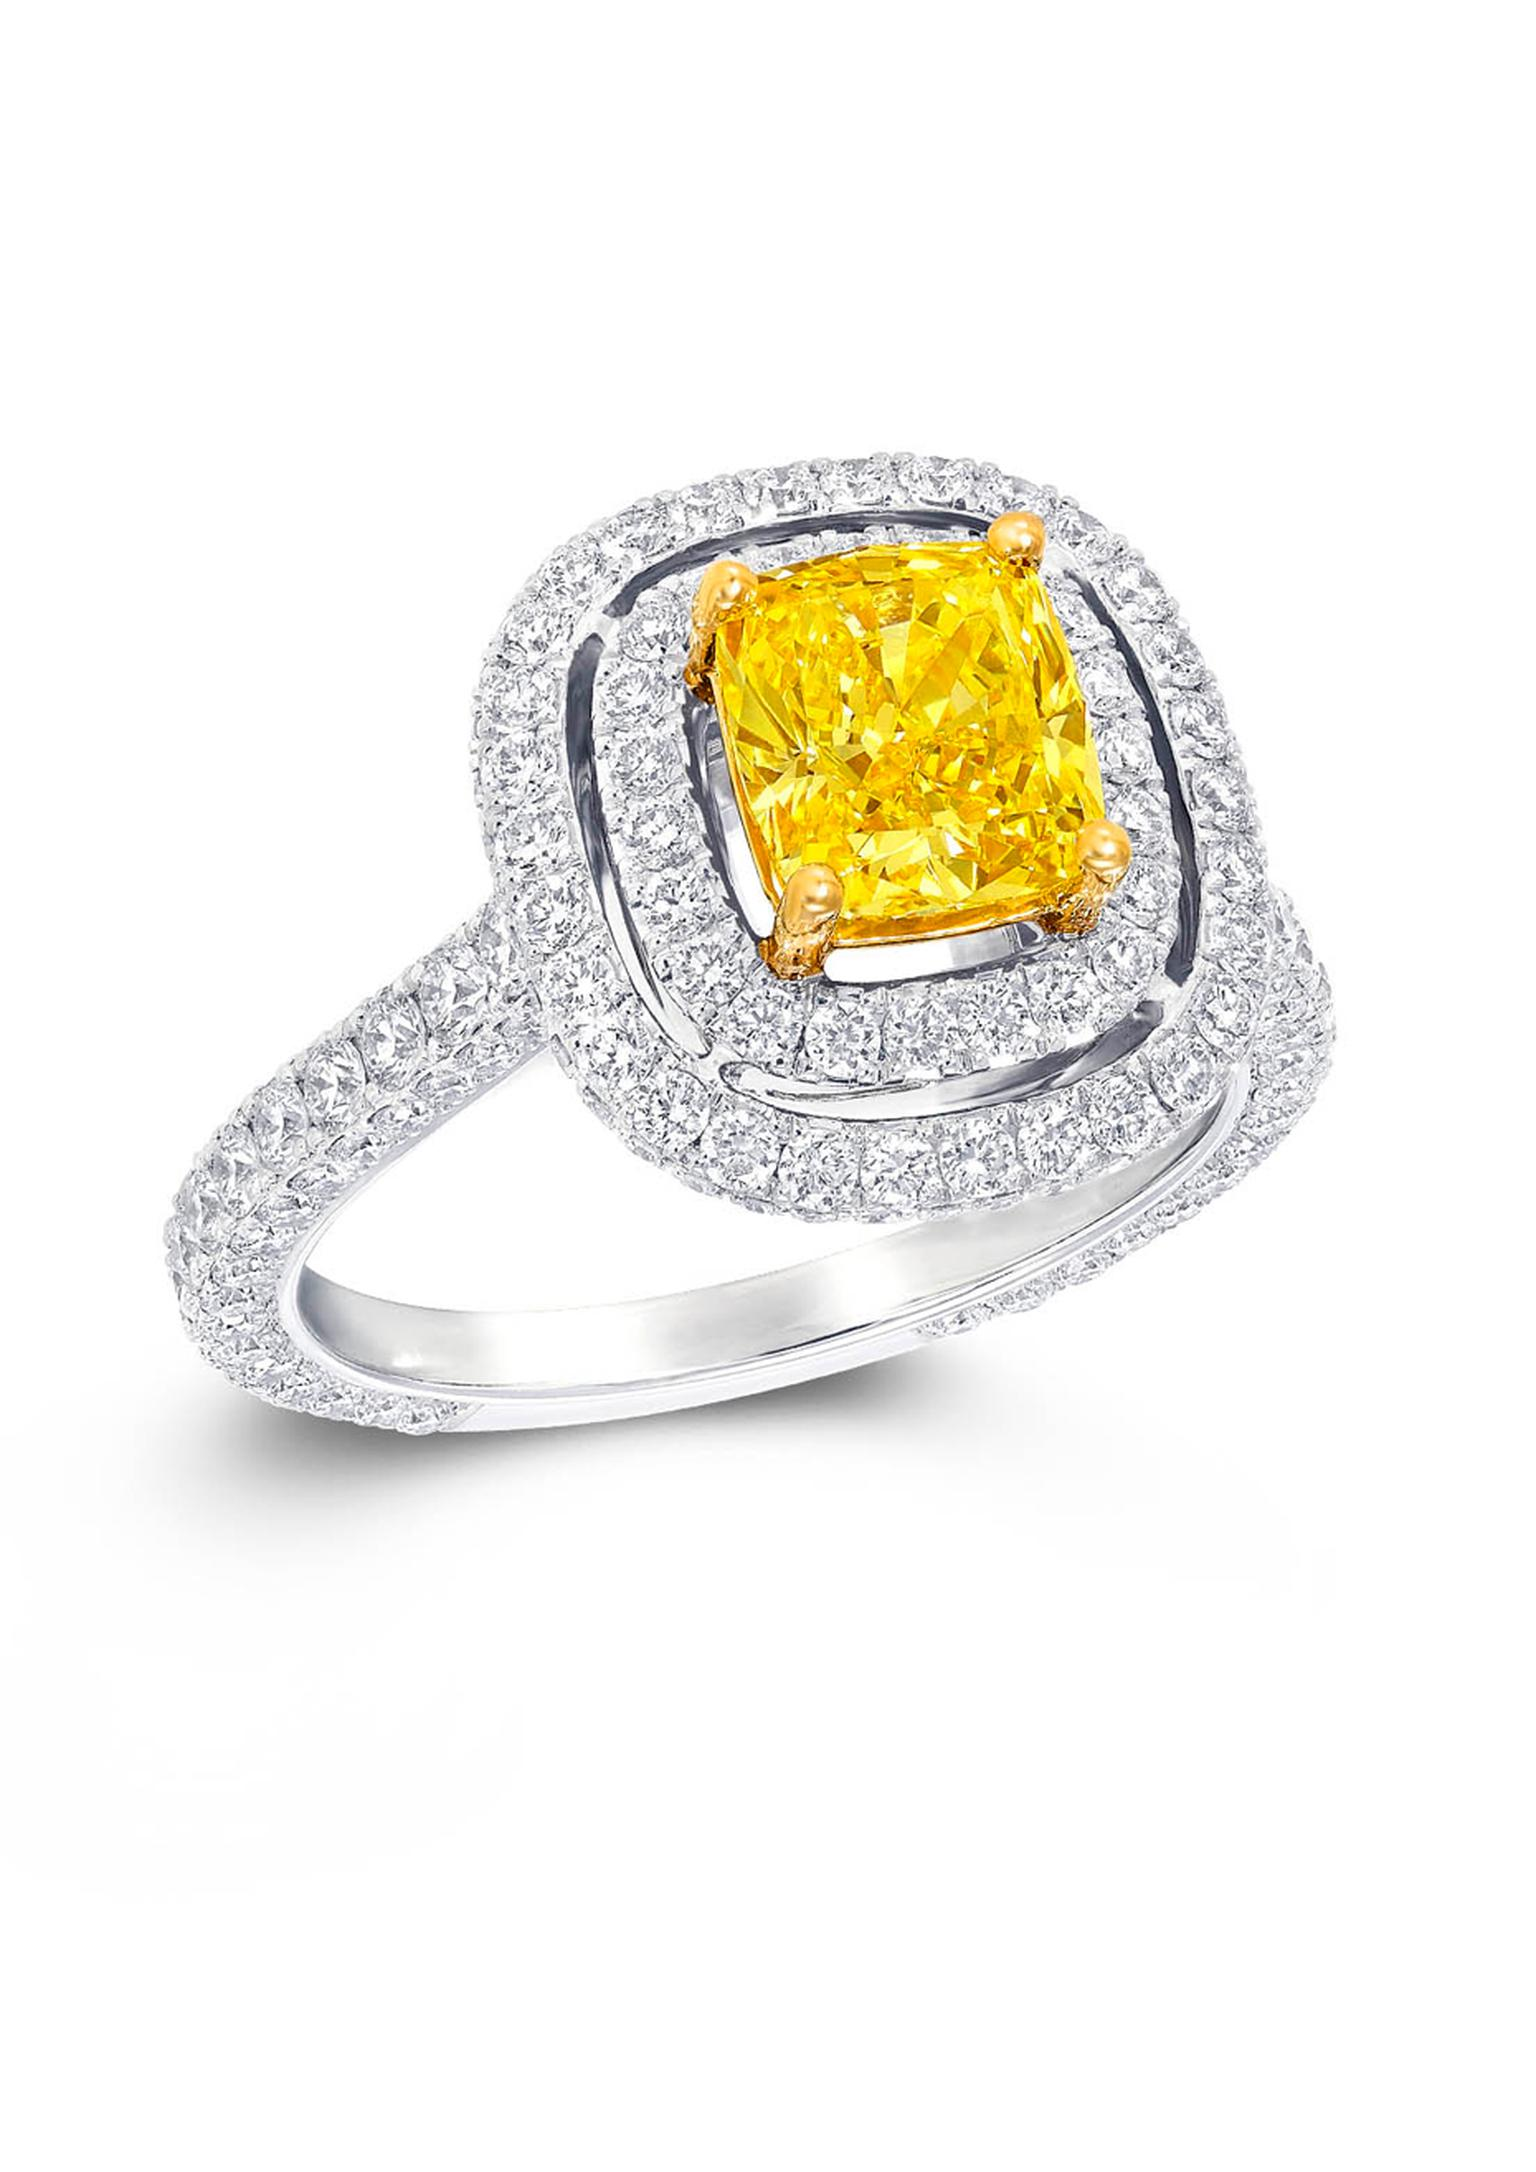 Graff Twin Constellation engagement ring with a double pavé setting surrounding a yellow diamond centre (£POA).